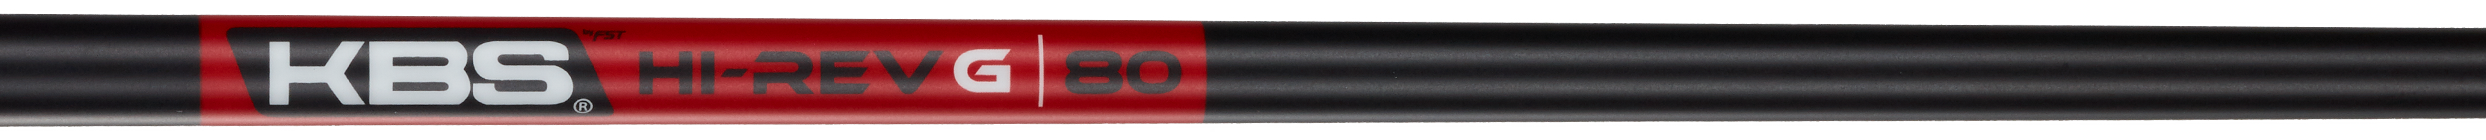 KBS HI-REV G golf shaft